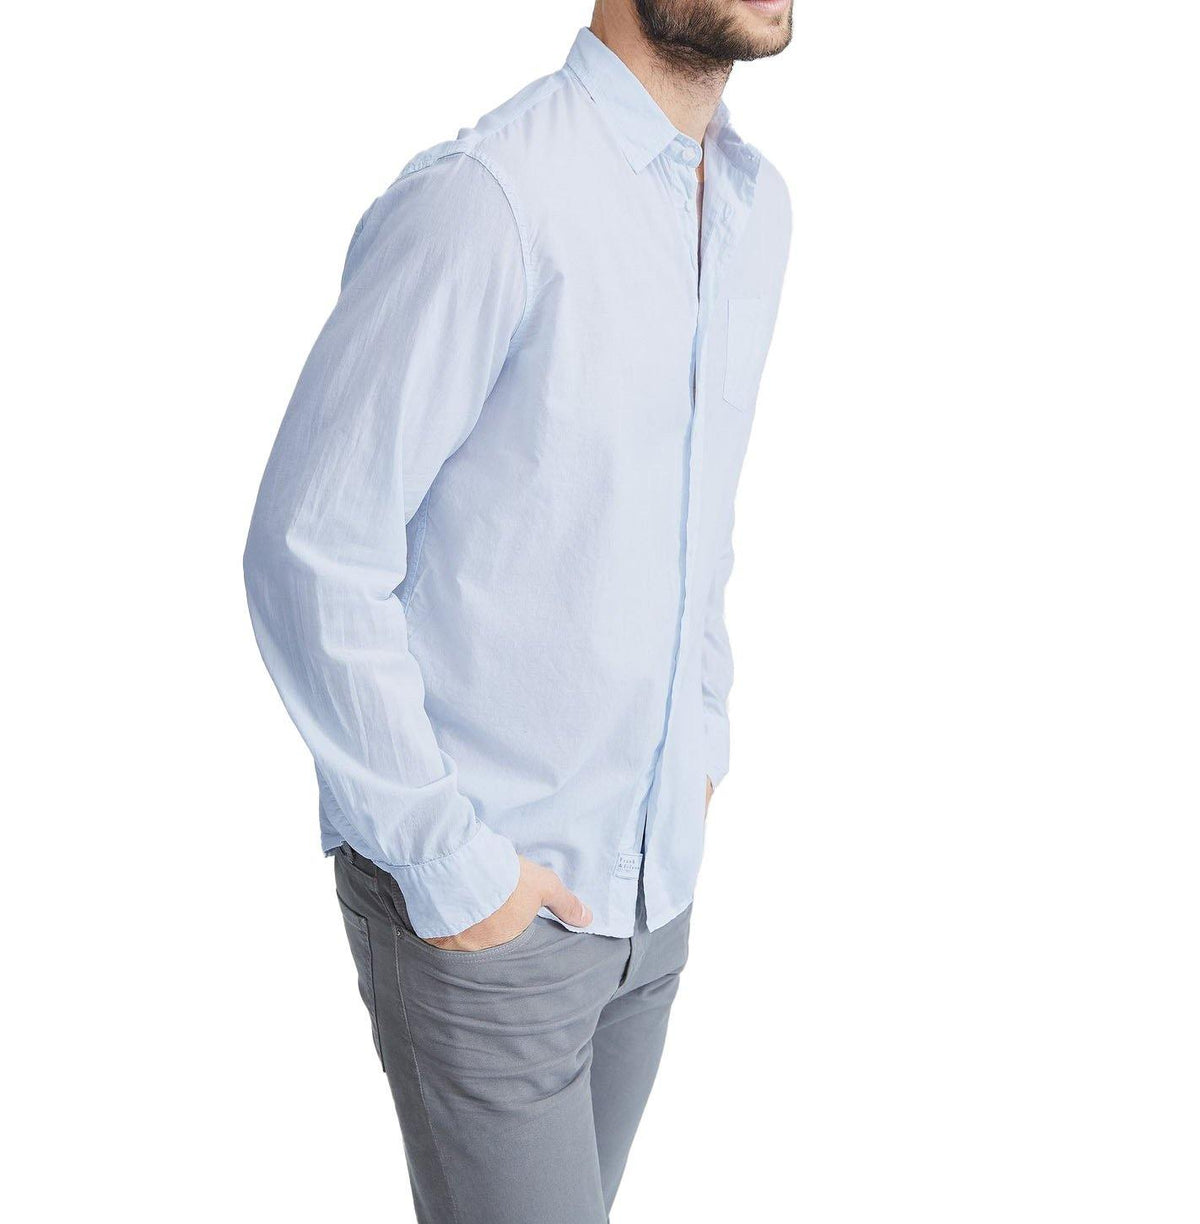 'Luke' Button Down - Shirting Blue - Wheat Boutique